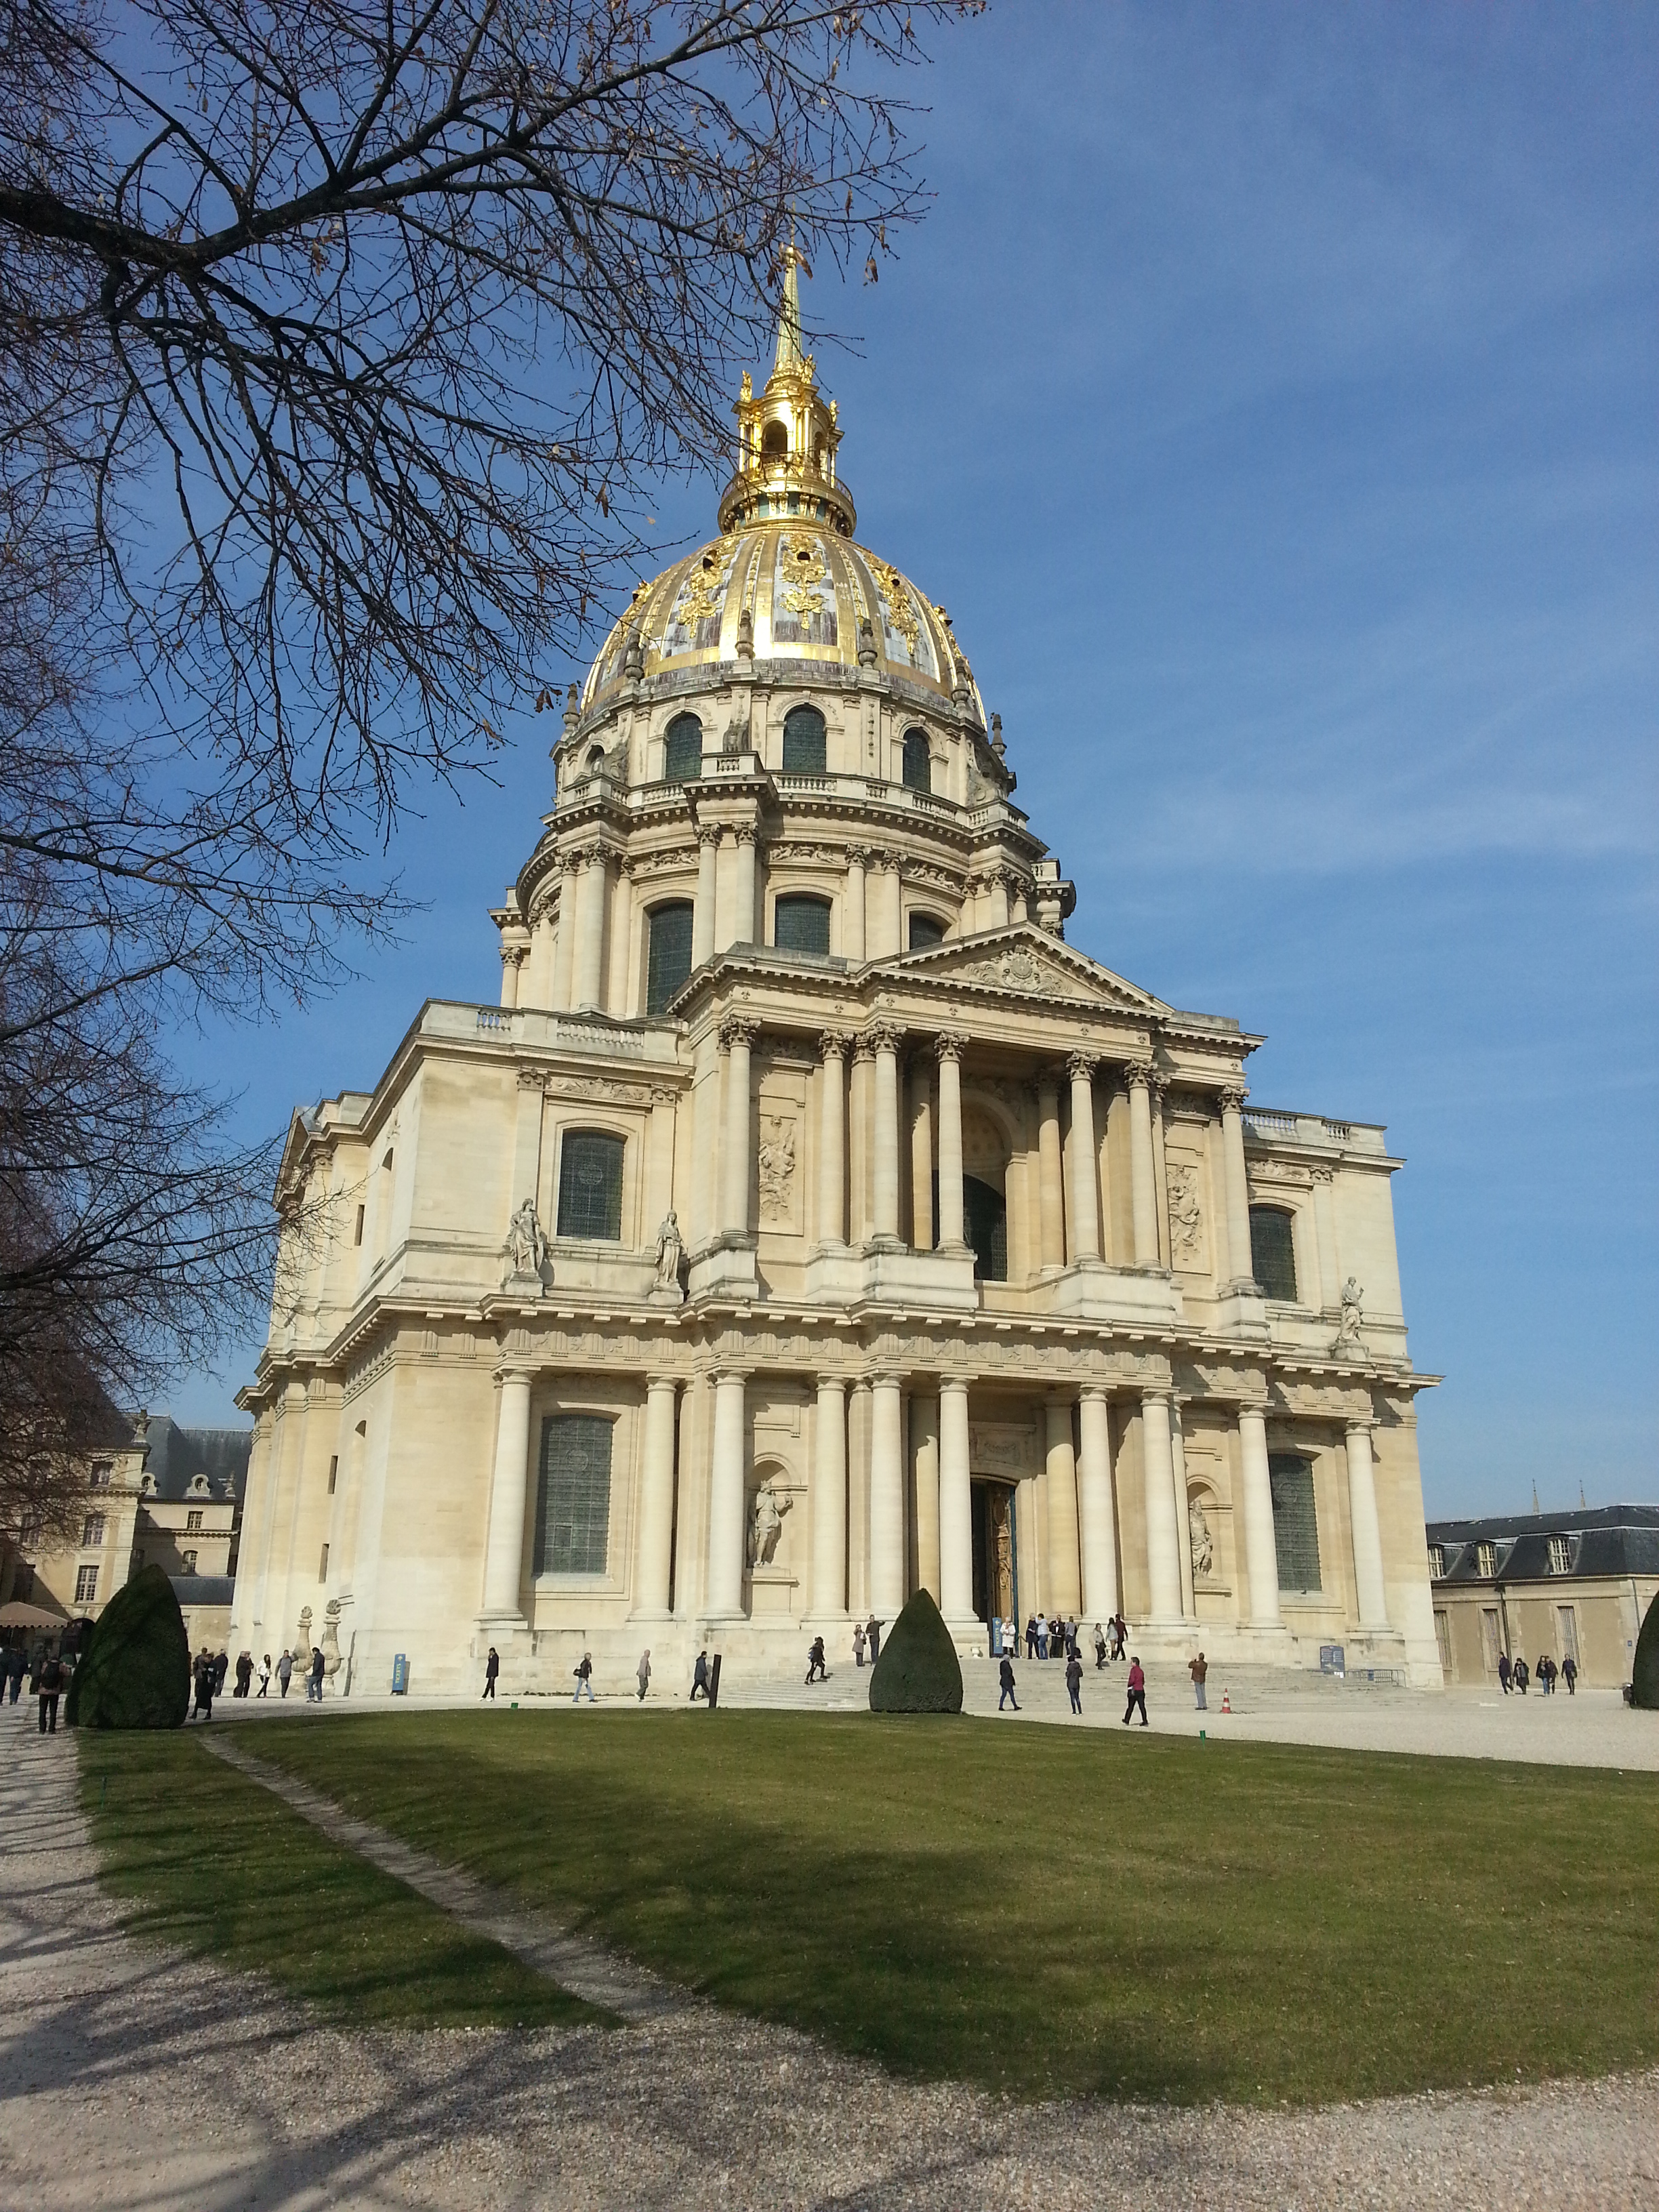 The Dome des Invalides (above) containing Napoleon's tomb (right)